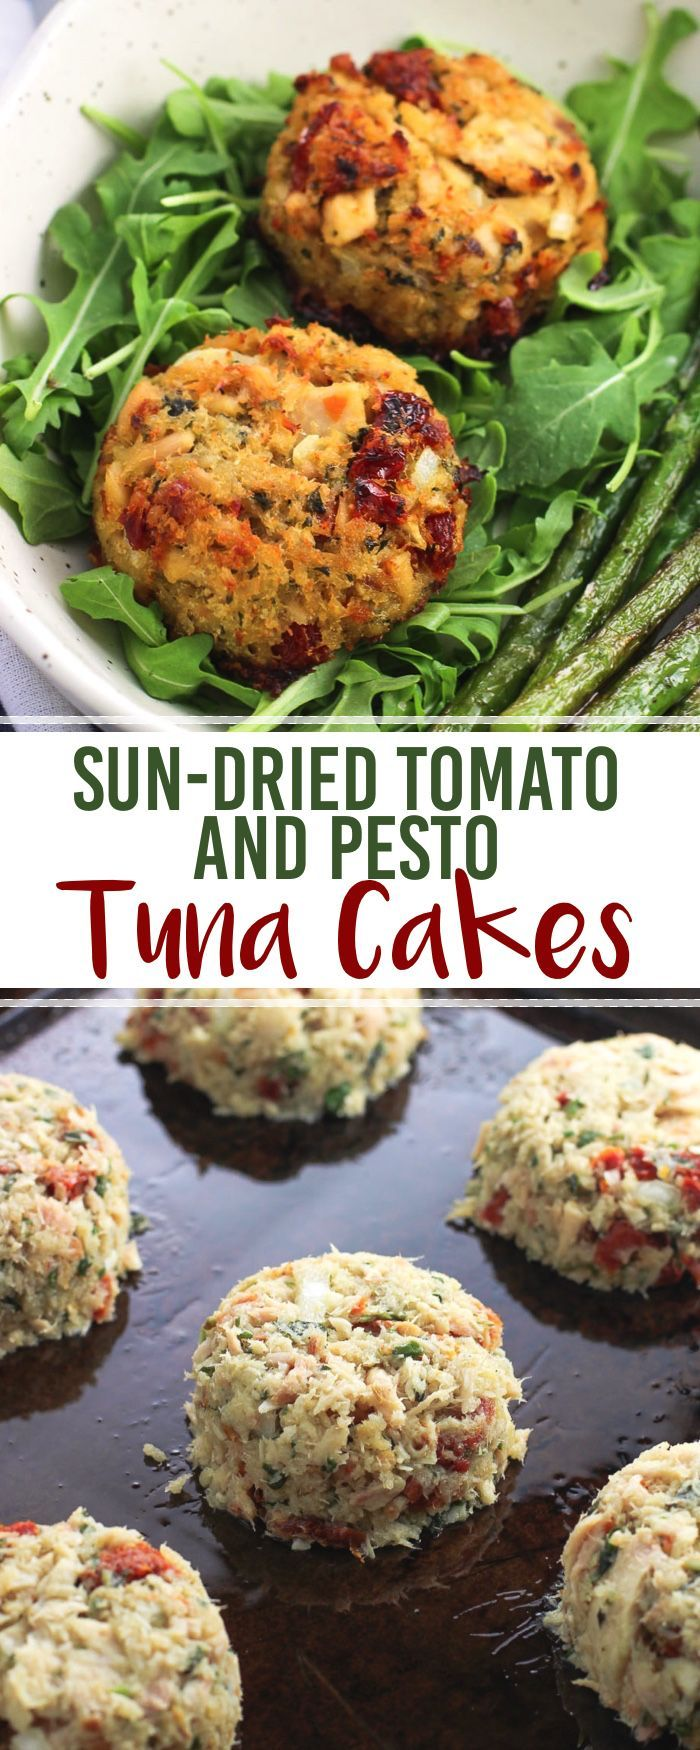 Sun-dried tomato and pesto tuna cakes are a flavorful, healthy meal that comes together in just about 30 minutes - a great weeknight dinner recipe! These tuna cakes are baked and served over a bed of arugula and alongside easy pan-roasted asparagus. #Wild